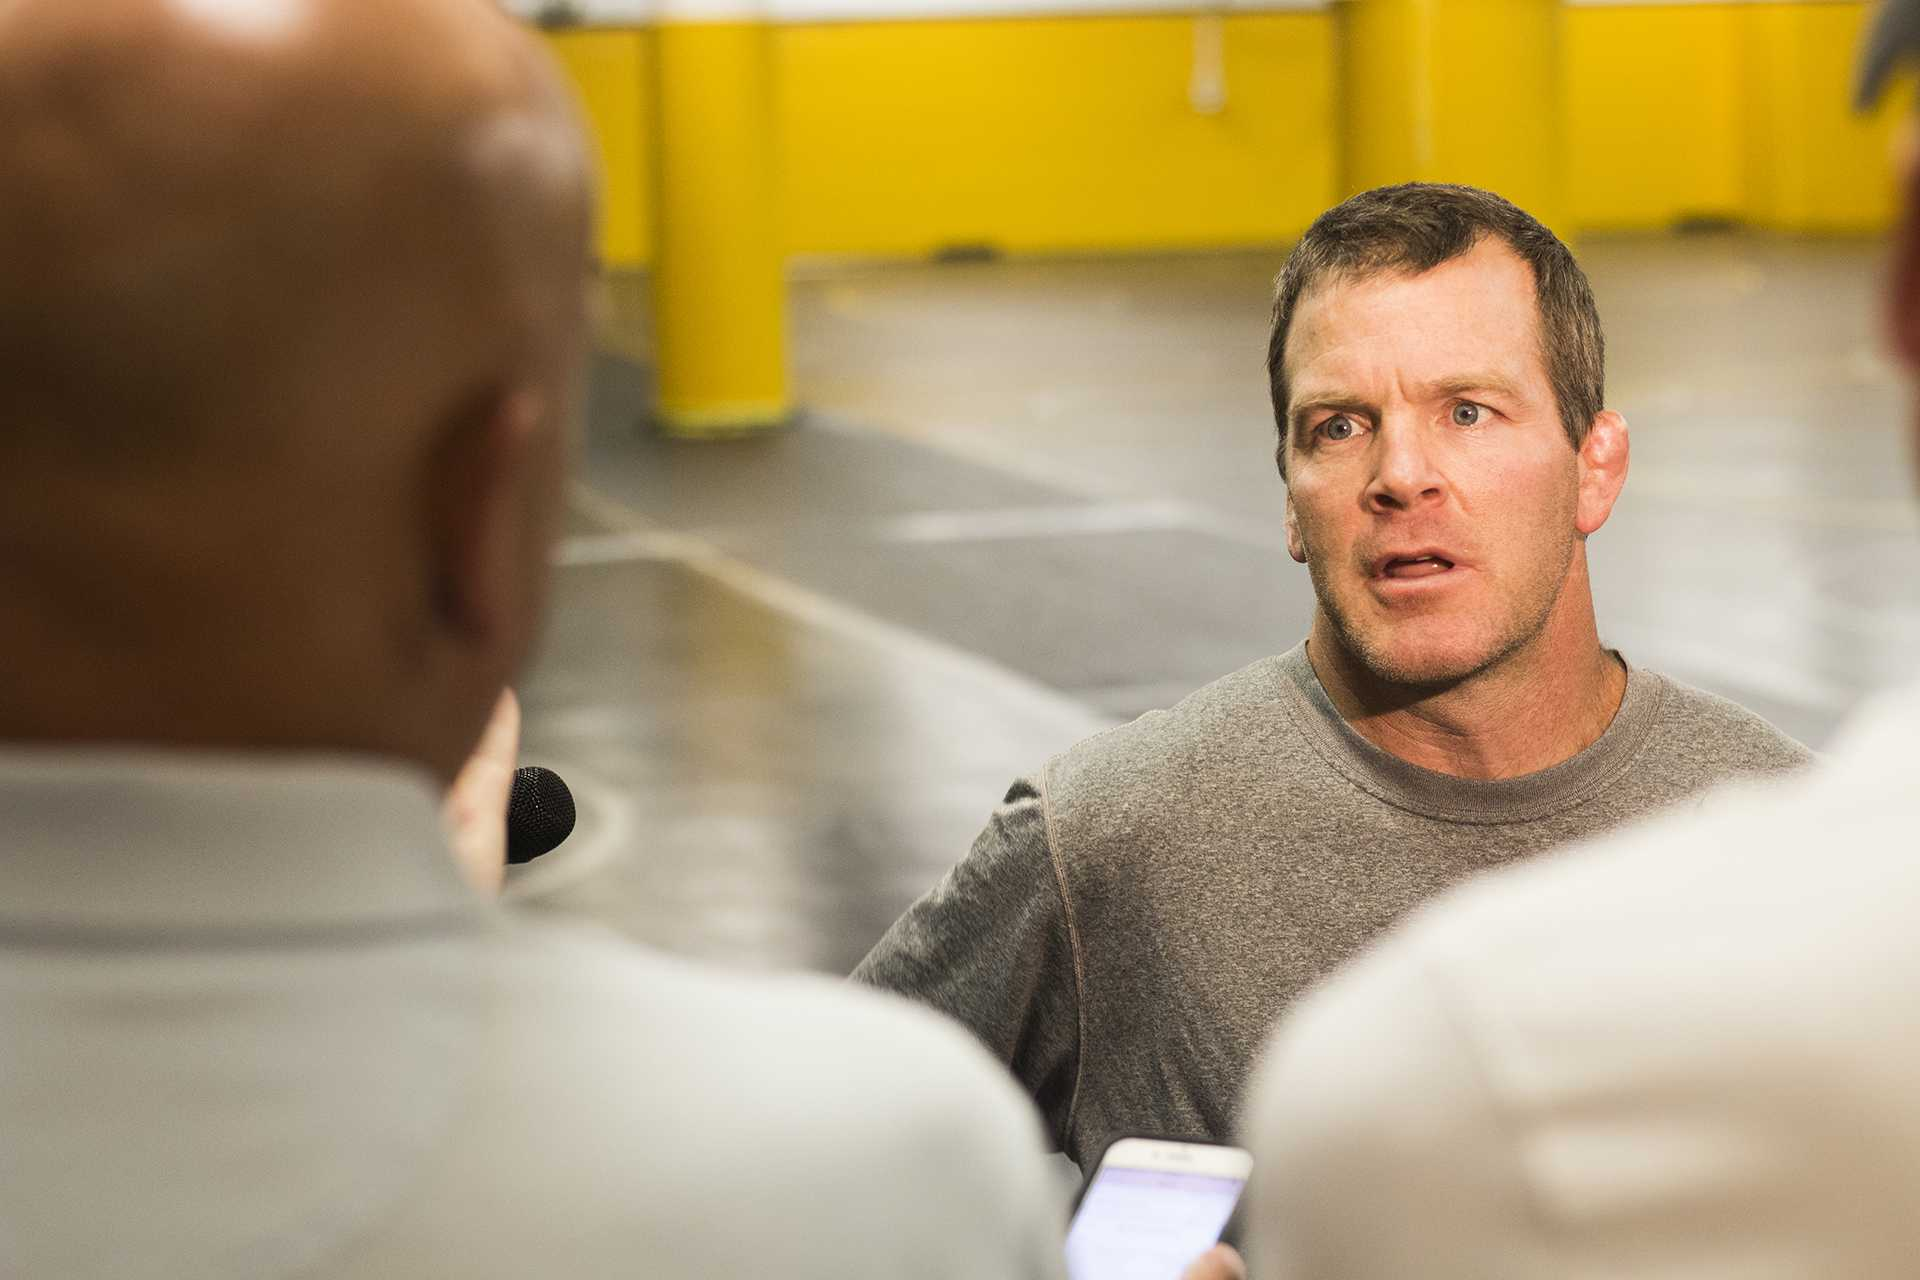 Iowa assistant coach Terry Brands speaks with members of the media during a wrestling practice inside the Dan Gable Wrestling Complex in Carver-Hawkeye Arena on Thursday, Aug. 10, 2017. Thomas Gilman is traveling to Paris, France, to compete for the World Championship on Aug. 25. Gilman is the fourth Hawkeye to represent the United States national team at 57 kg in a row since 2014. (Joseph Cress/The Daily Iowan)